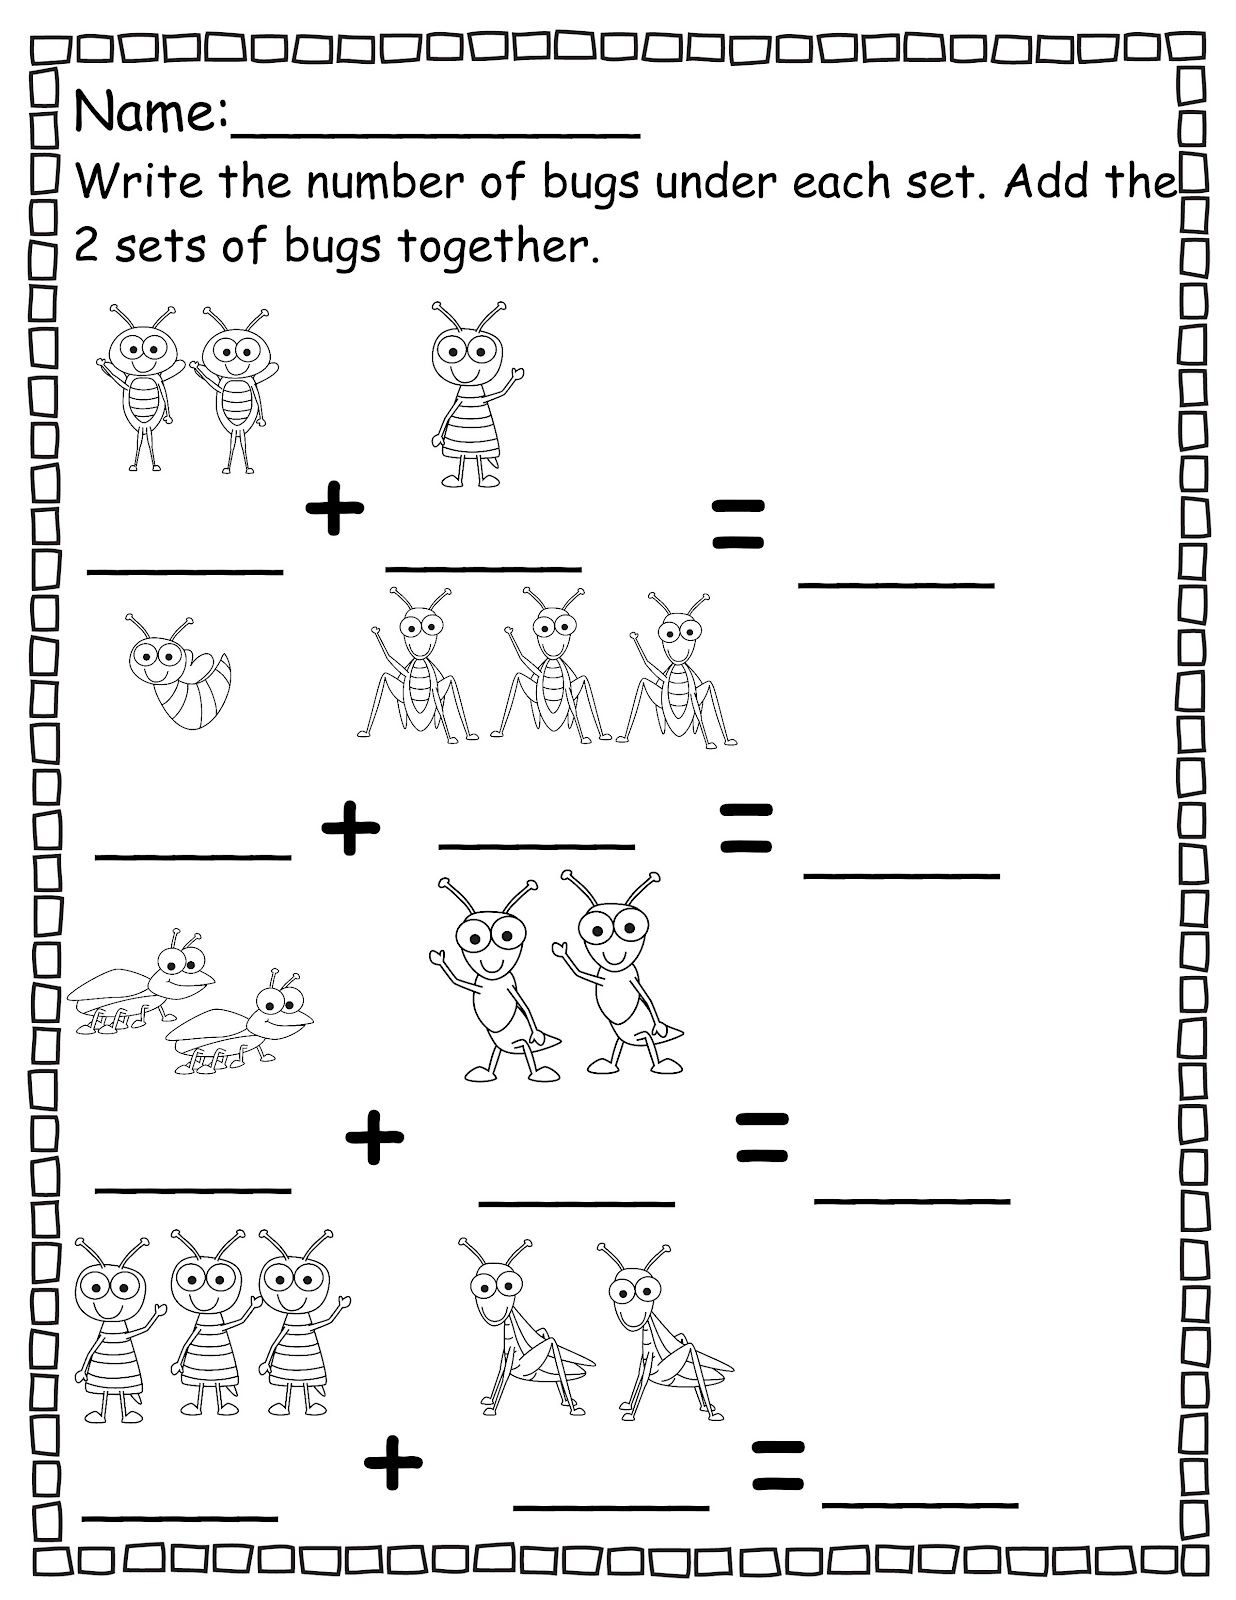 Printables Free Printable Pre Kindergarten Worksheets collection pre k free worksheets photos kaessey for school kaessey